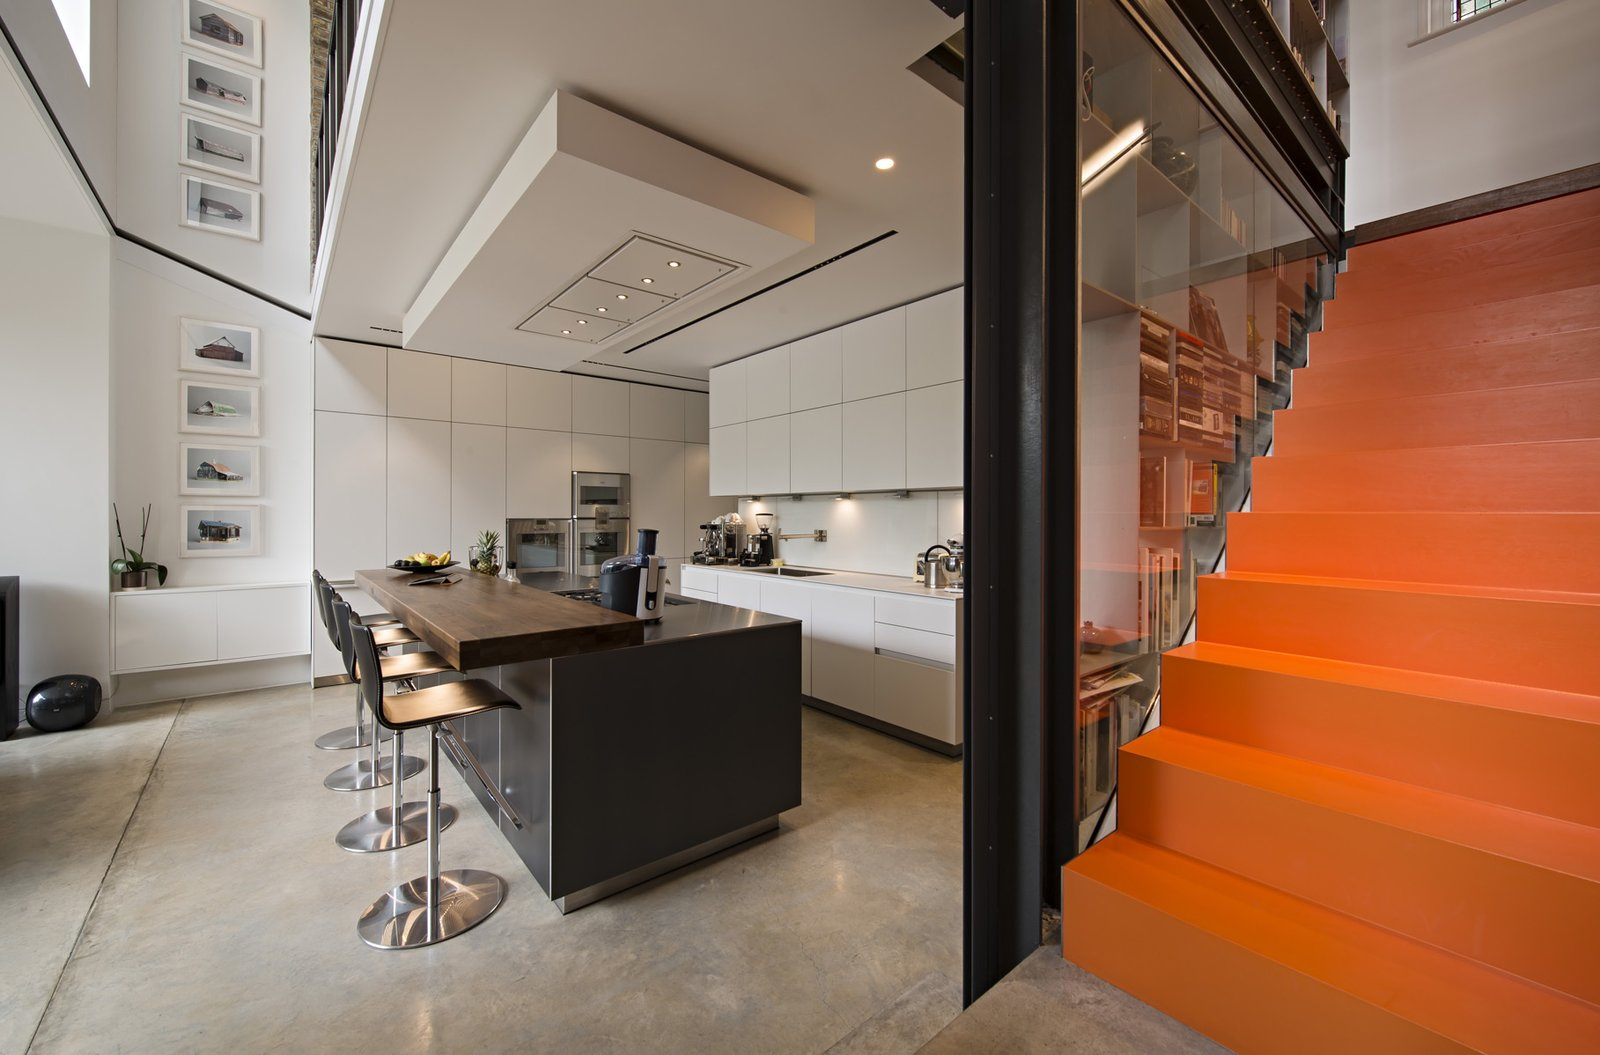 The stairs roll out into the kitchen and dining areas. The individual steps are steel trays dipped in orange liquid rubber, to squeaky effect. 190+ Best Modern Staircase Ideas by Dwell